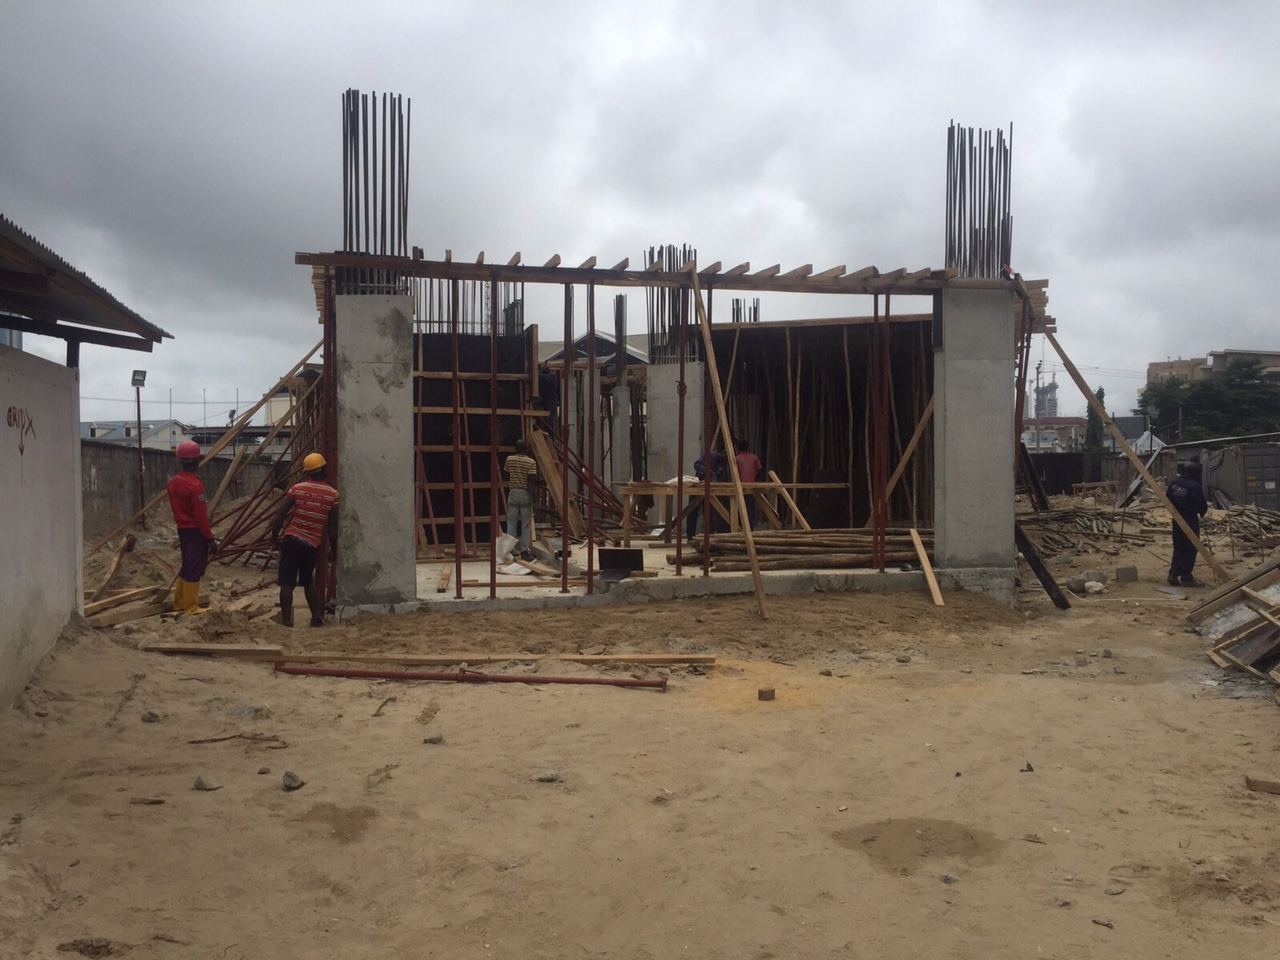 August 2015. Updated - Development: The Art Hotel, Oniru - Lagos